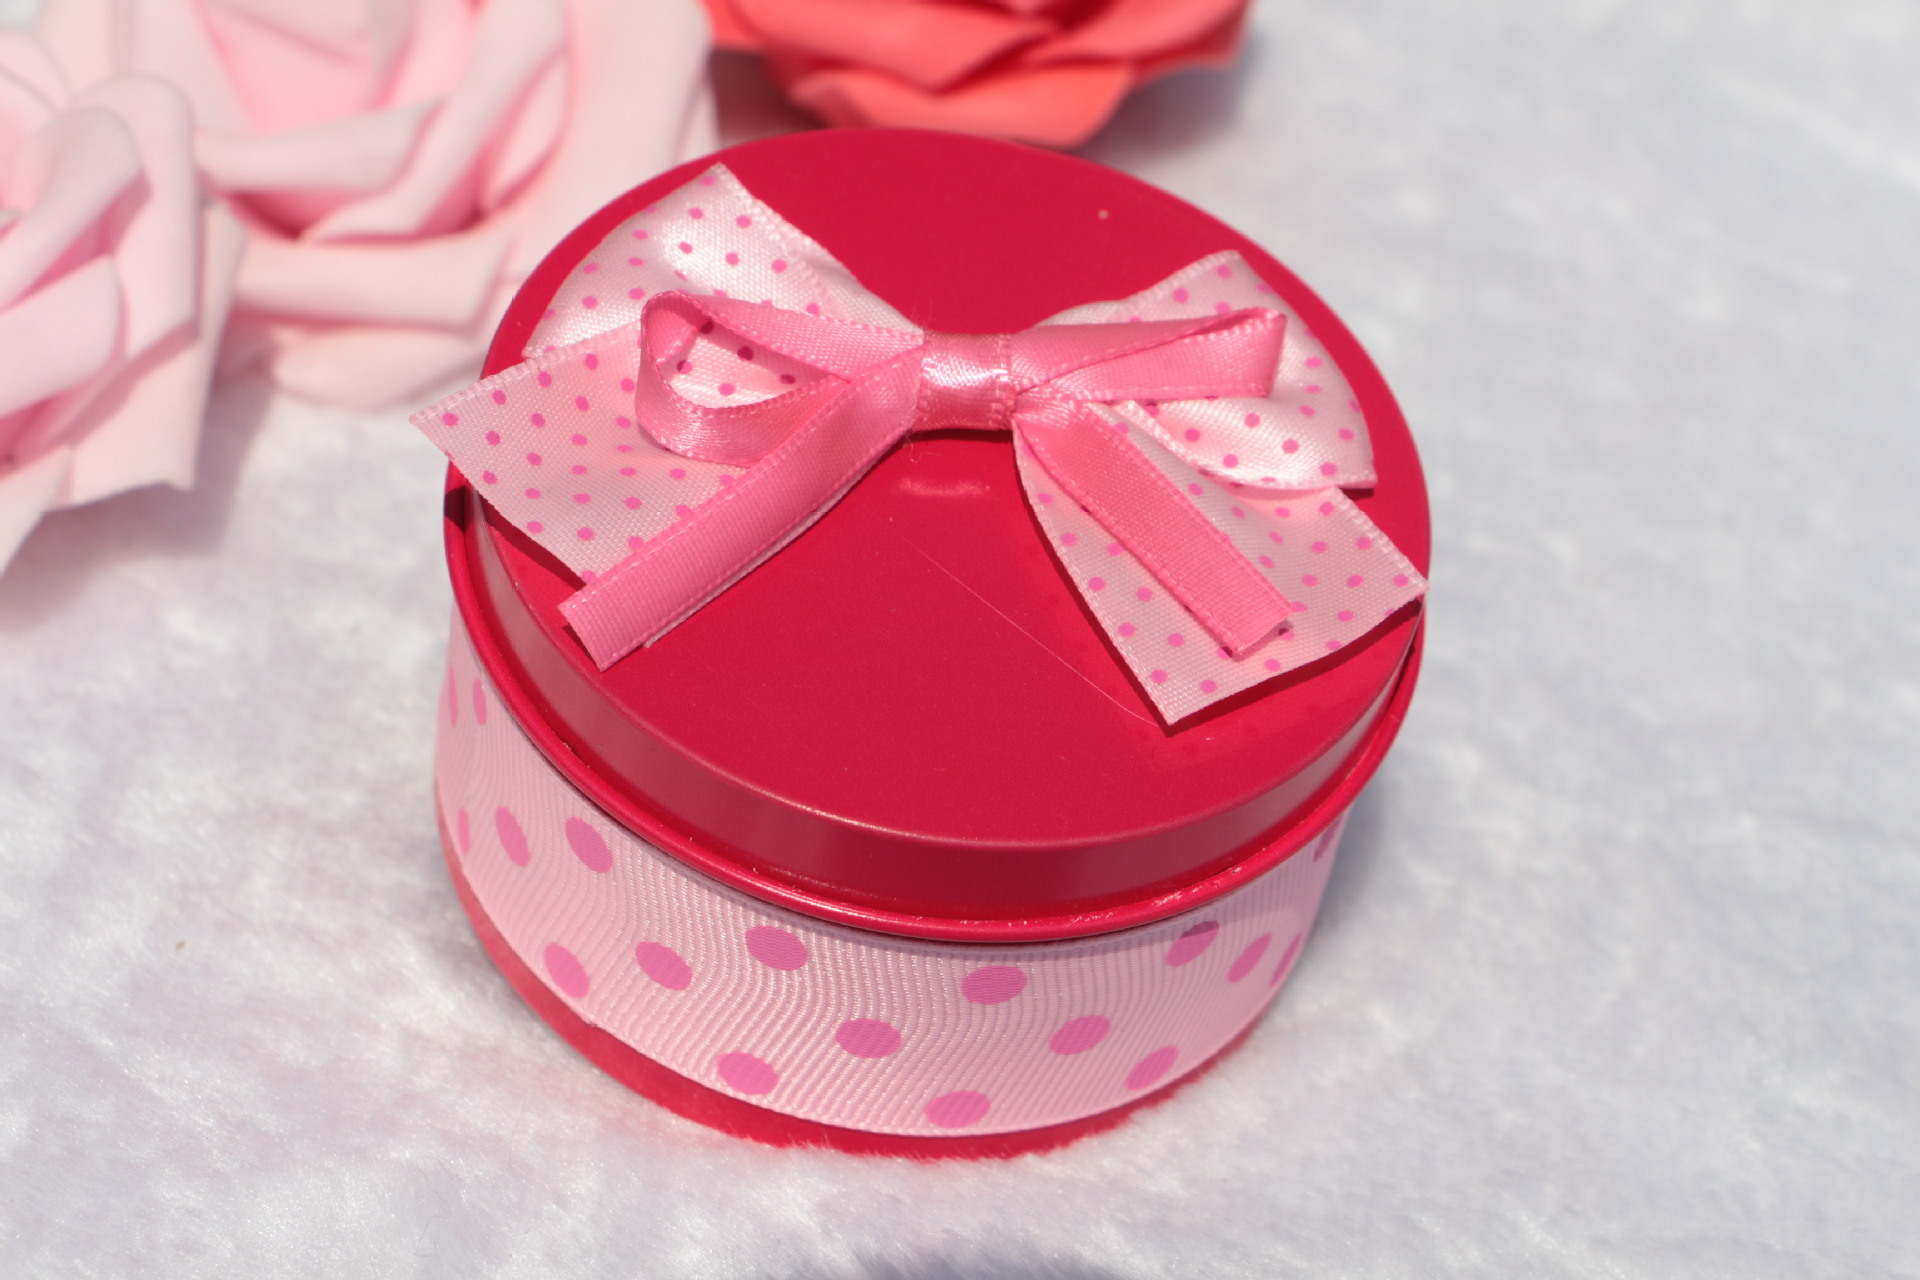 50pcs New Tinplate Round Shaped Candy Boxes Lovely Metal Wedding ...